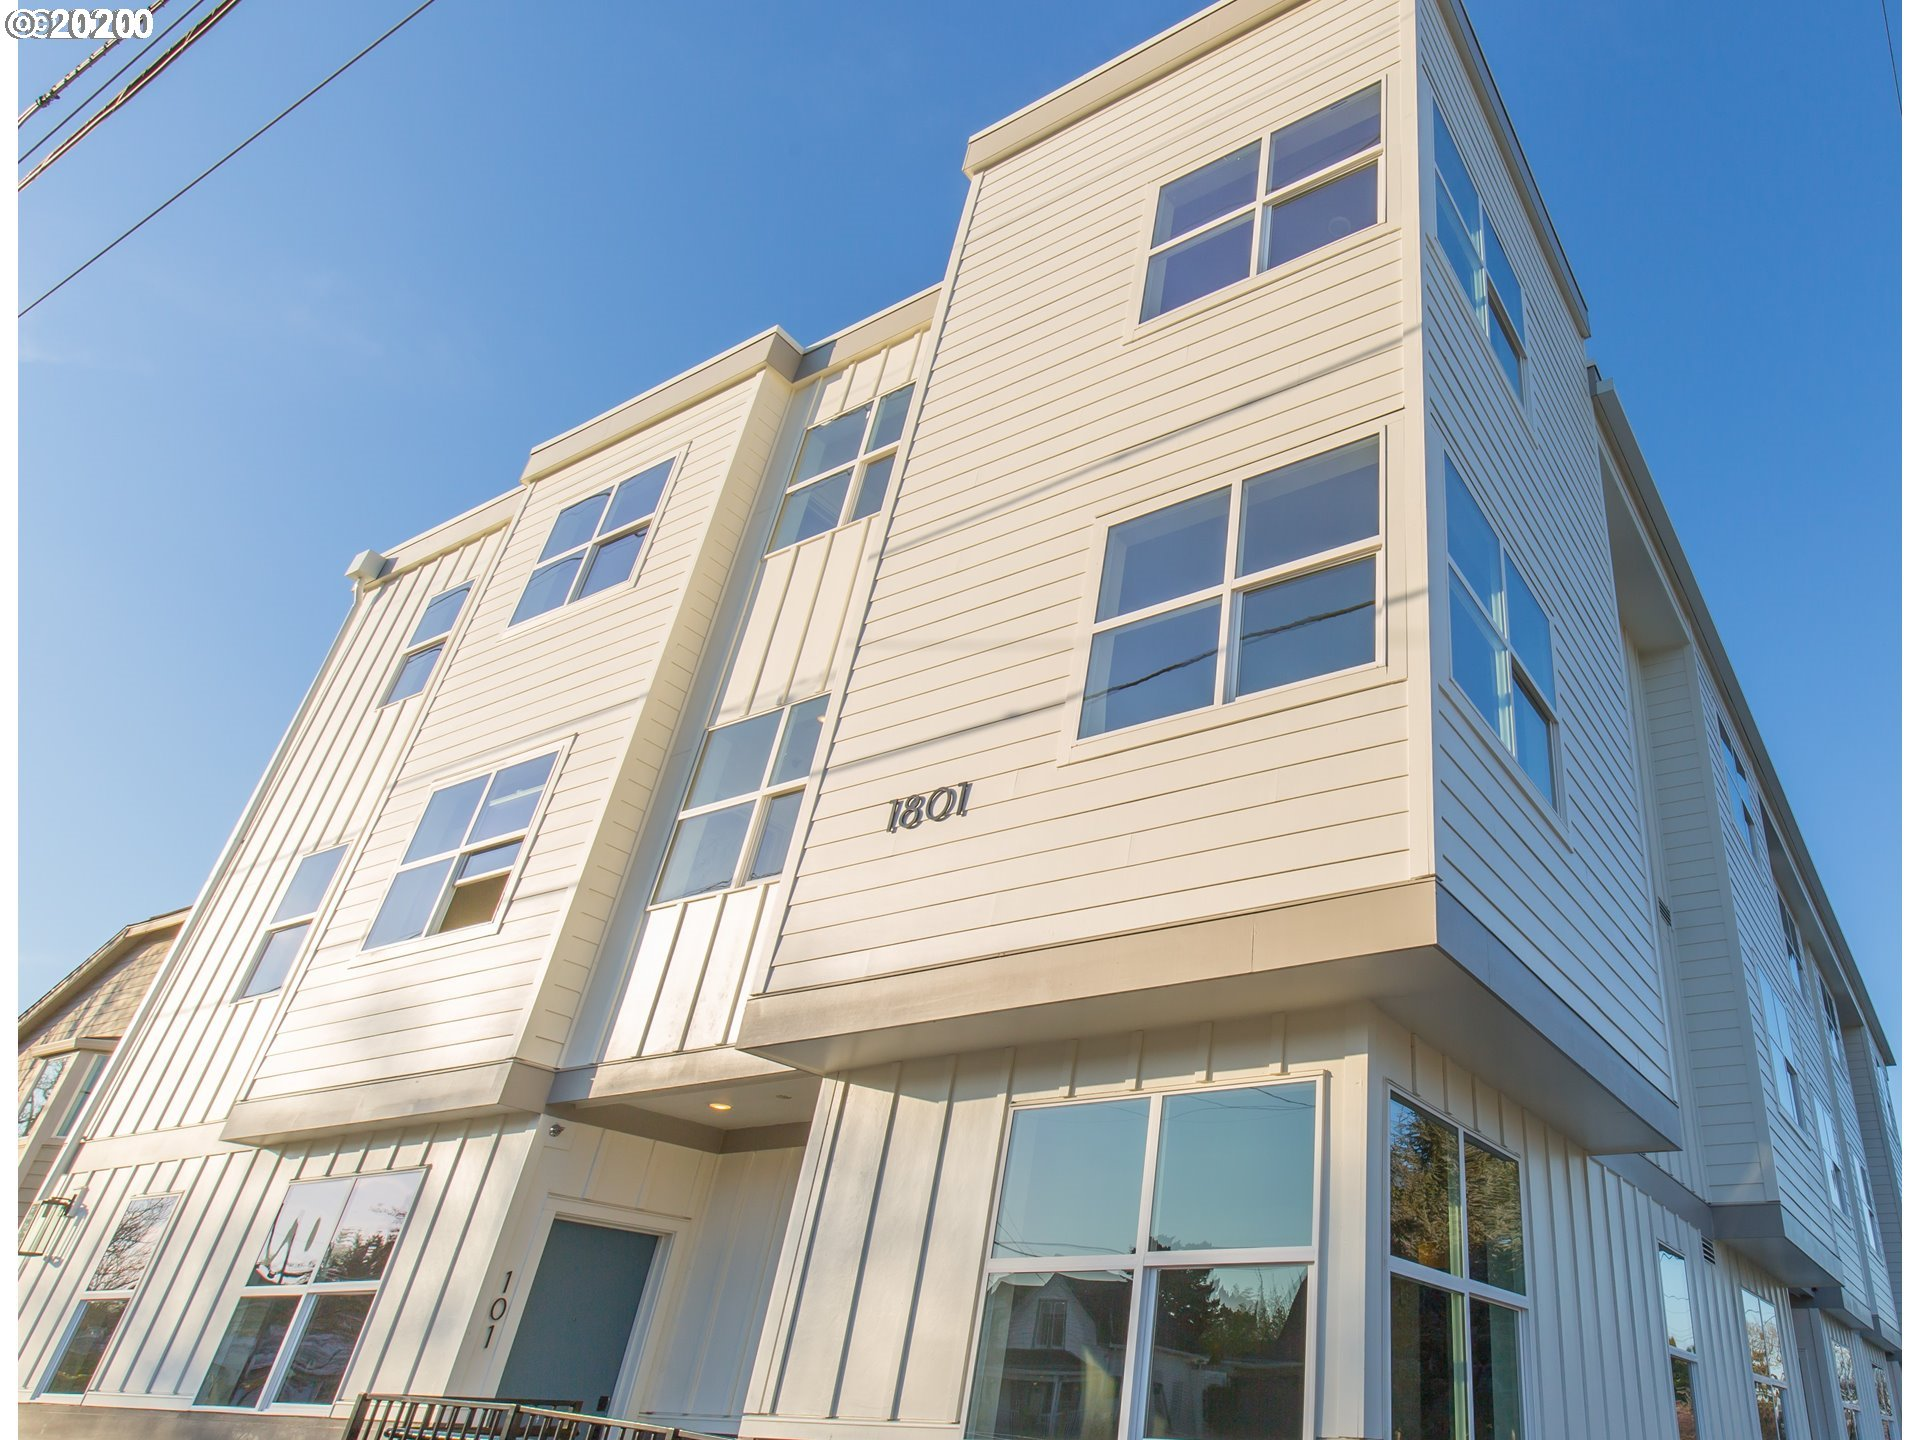 VIEWS!!! AMAZING top floor Condo with views of Forest Park! Beautiful and affordable condo in North Portland awaits in Arbor Lodge, Portlands most charming neighborhood! This stunning two bedroom home features souther exposure light, carrera marble counters, stainless steel appliances, European finished cabinets, porcelain tile backsplash, 9+ ft ceilings, VERY low HOA dues!Only moments from the Max station, New Seasons, coffee shops and the best PDX has to offer!